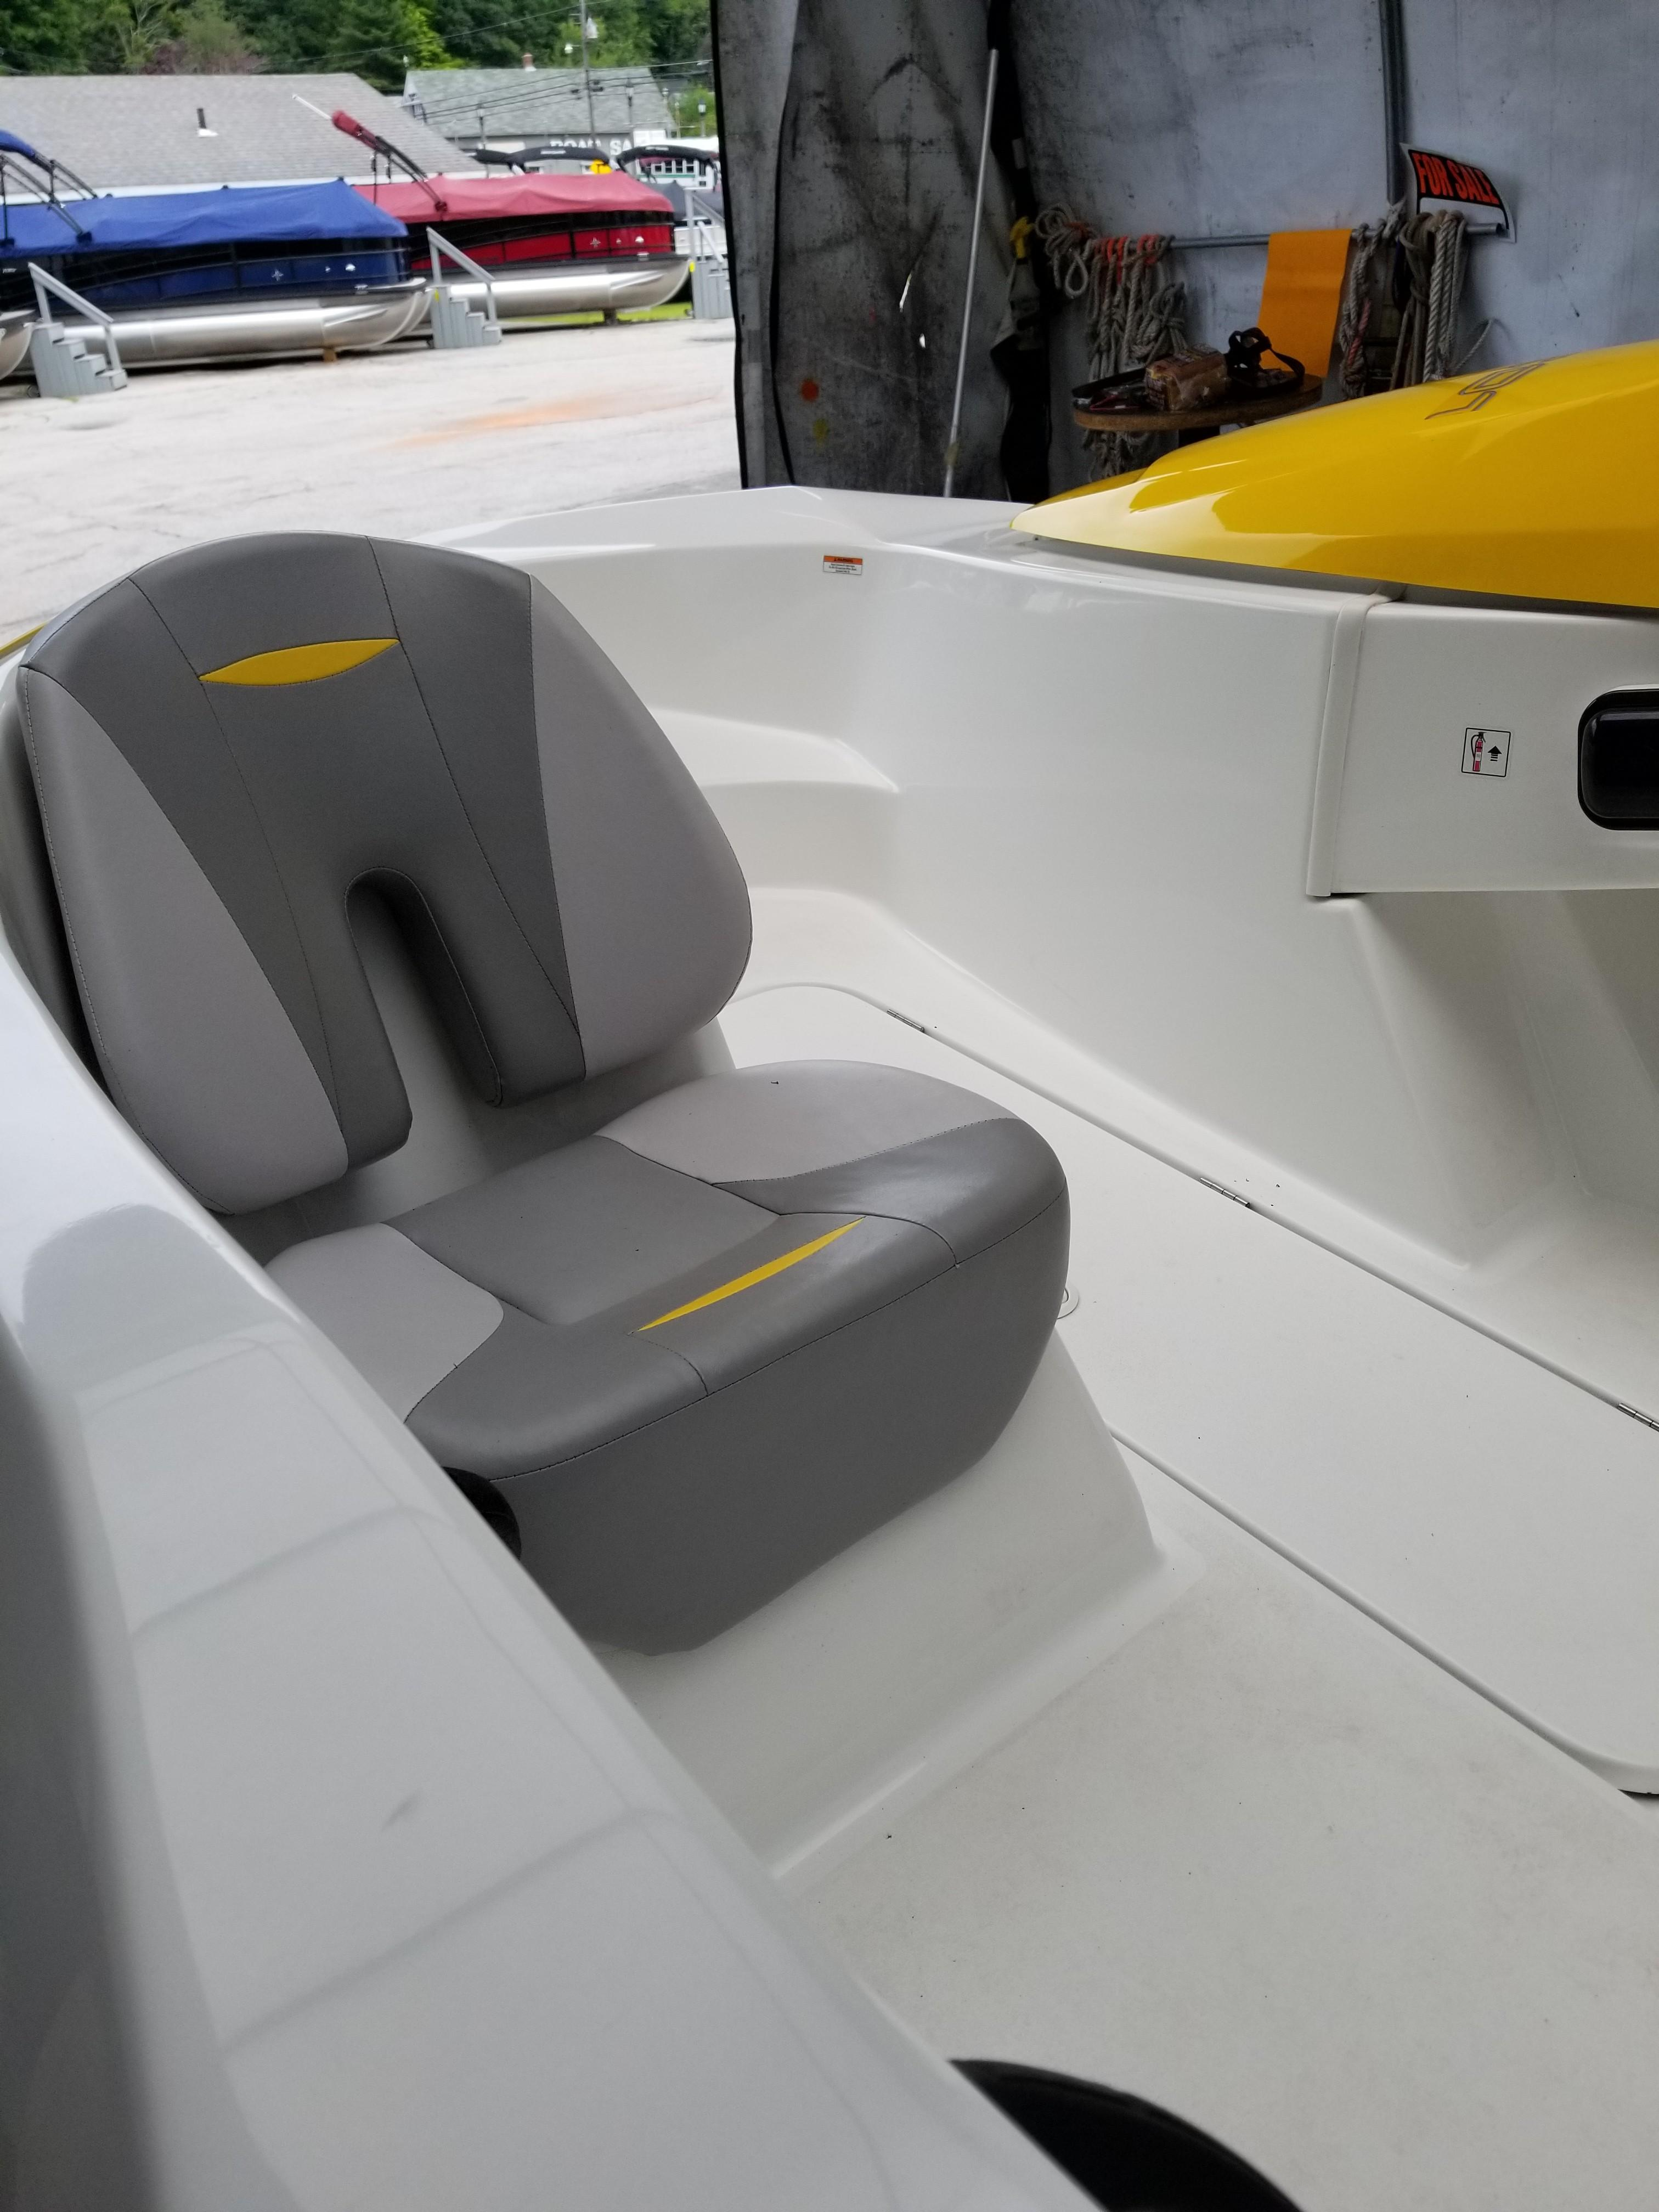 2009 Sea Doo Sportboat boat for sale, model of the boat is 150 Speedster & Image # 8 of 16